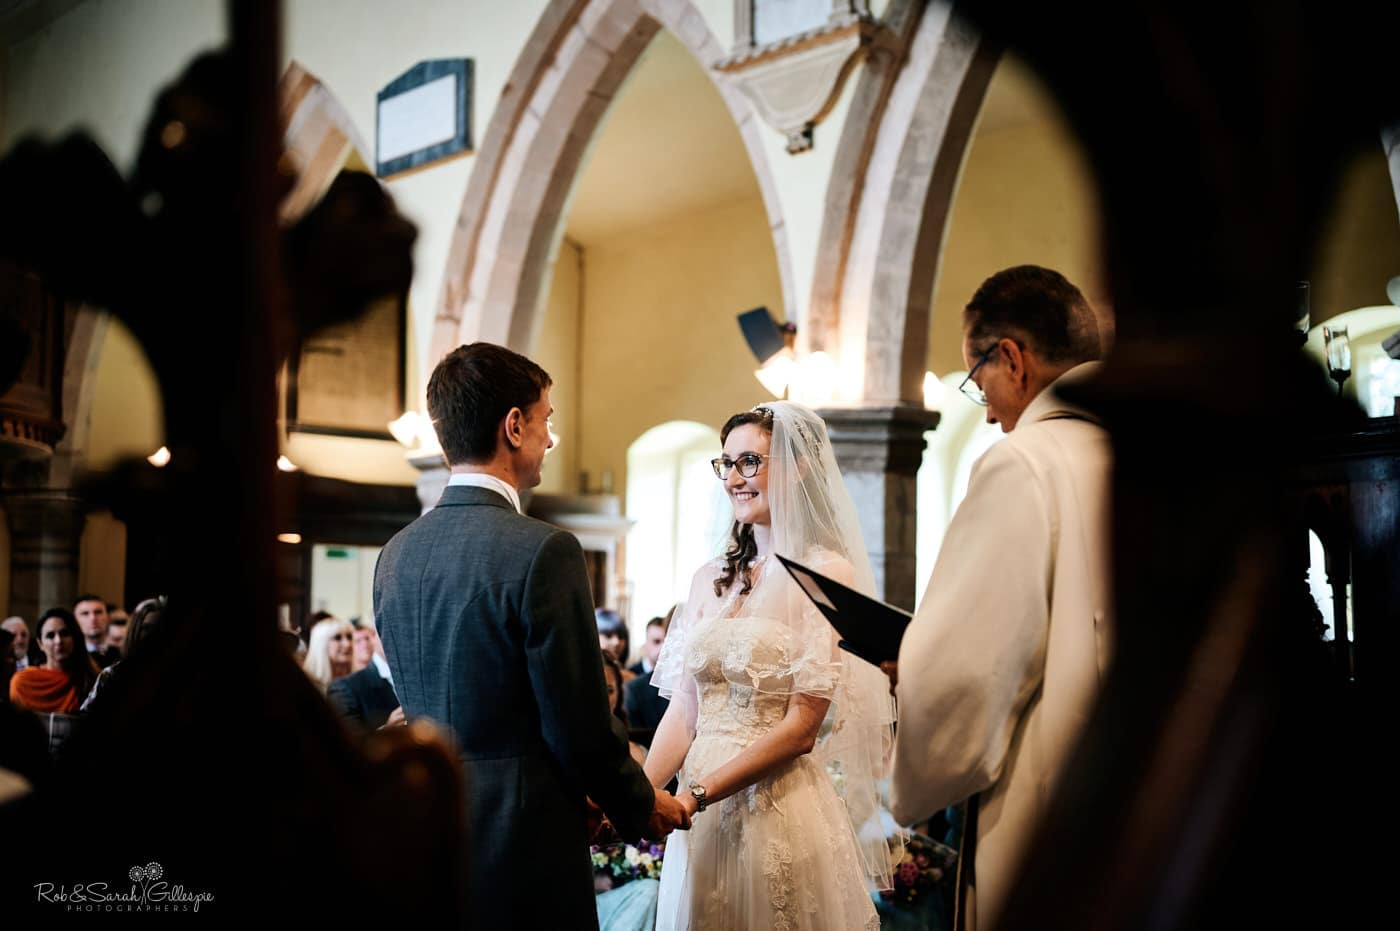 Bride and groom exchange wedding vows at Hanbury Church